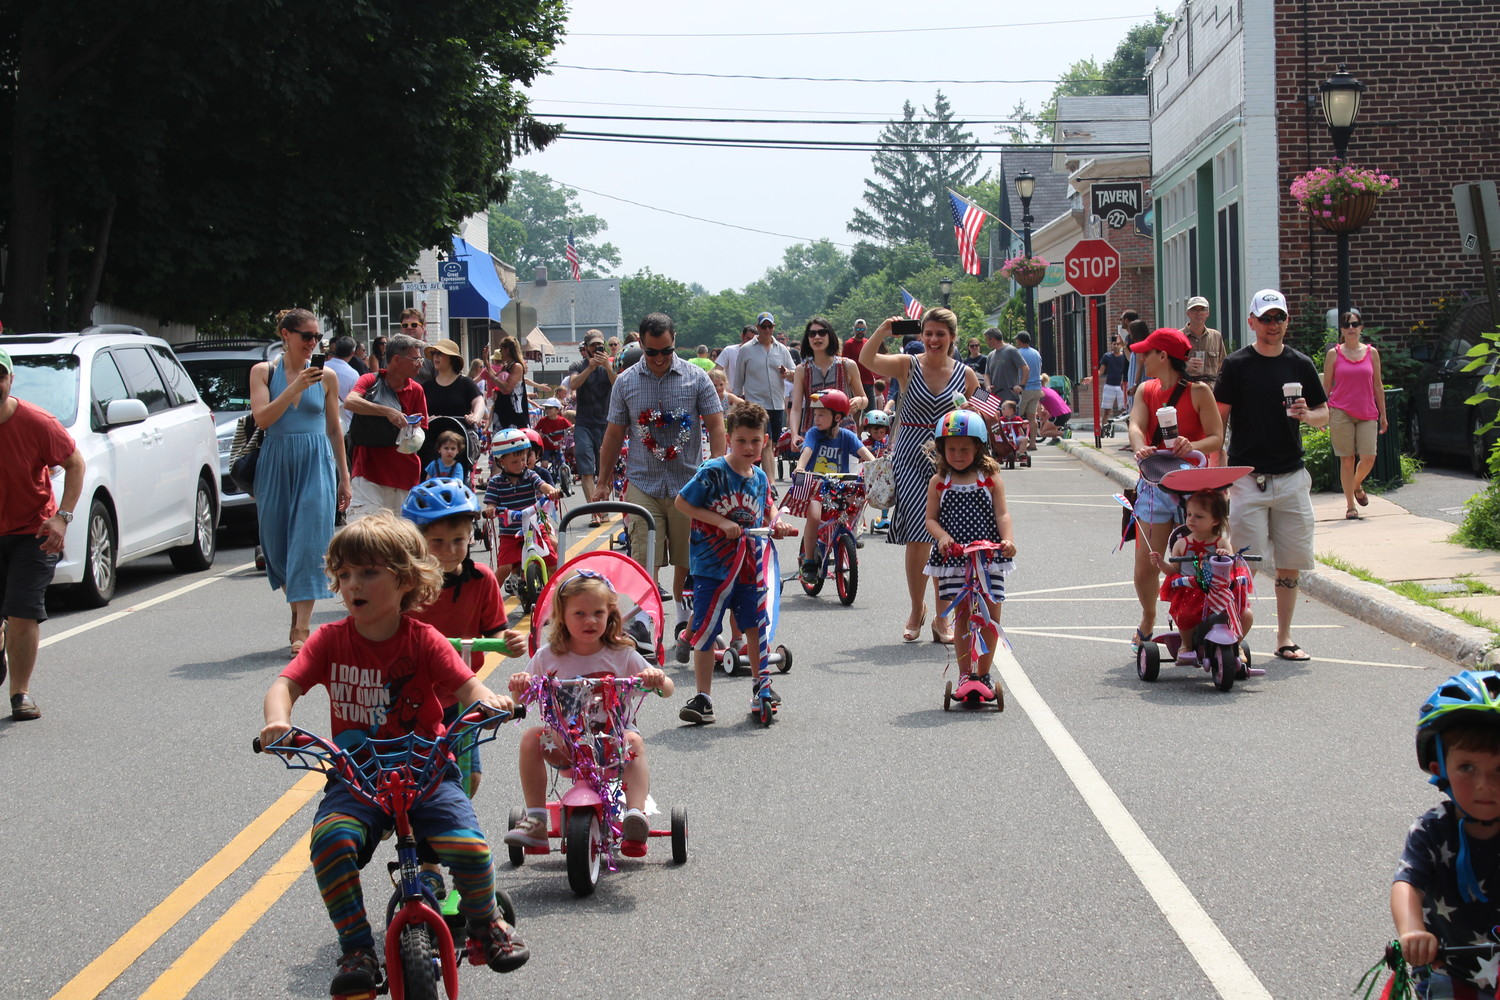 The Village of Sea Cliff's annual Fourth of July celebration ended with a bike parade, in which participants of all ages rode their bicycles, tricycles, scooters and skateboards on Sea Cliff Avenue.